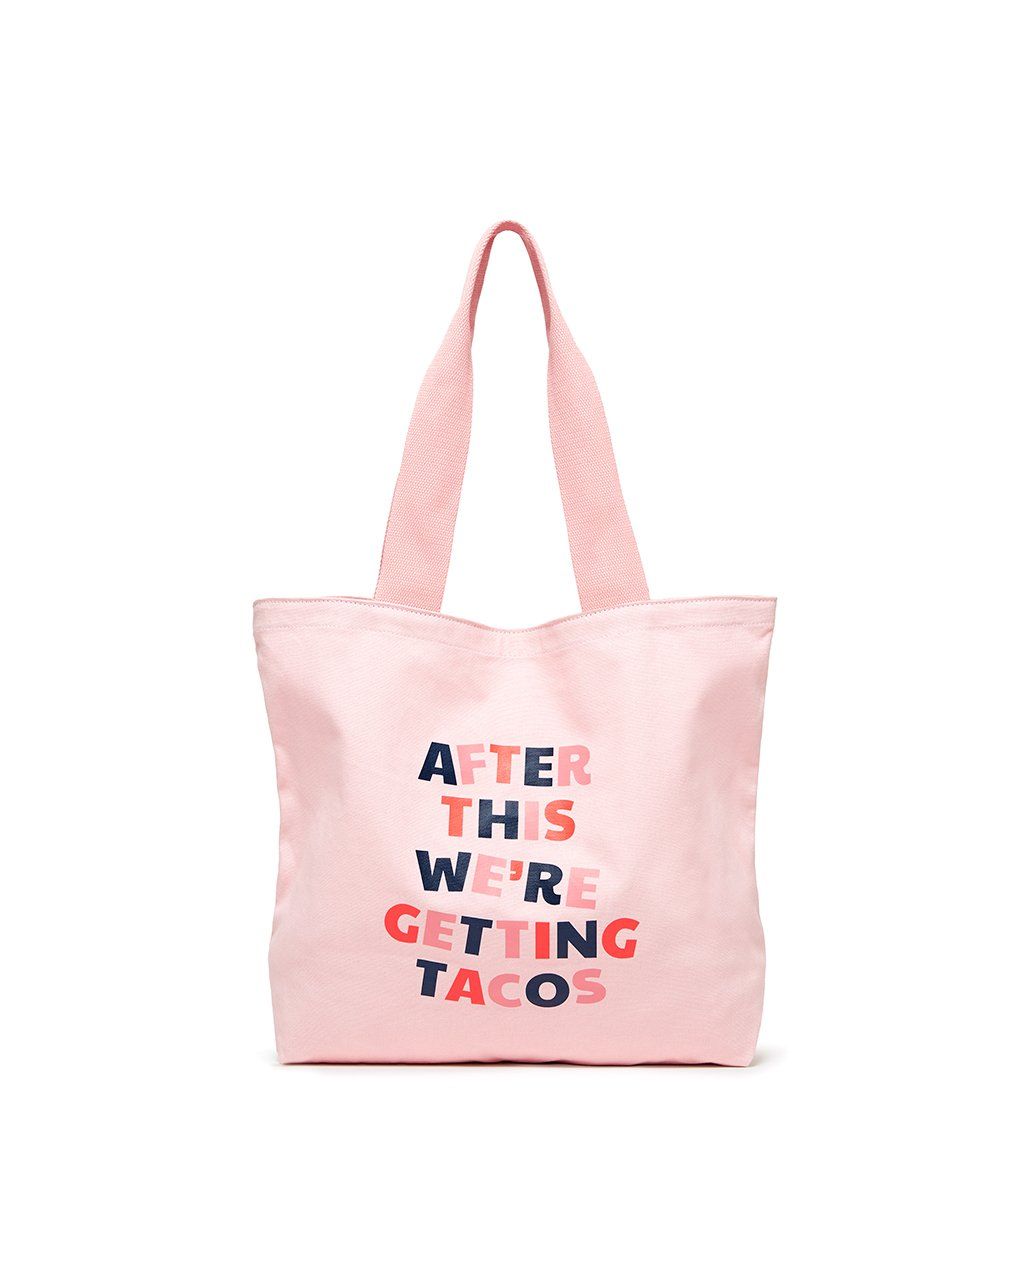 This lightweight canvas tote comes in pink, with 'After This We're Getting Tacos' printed on the front.